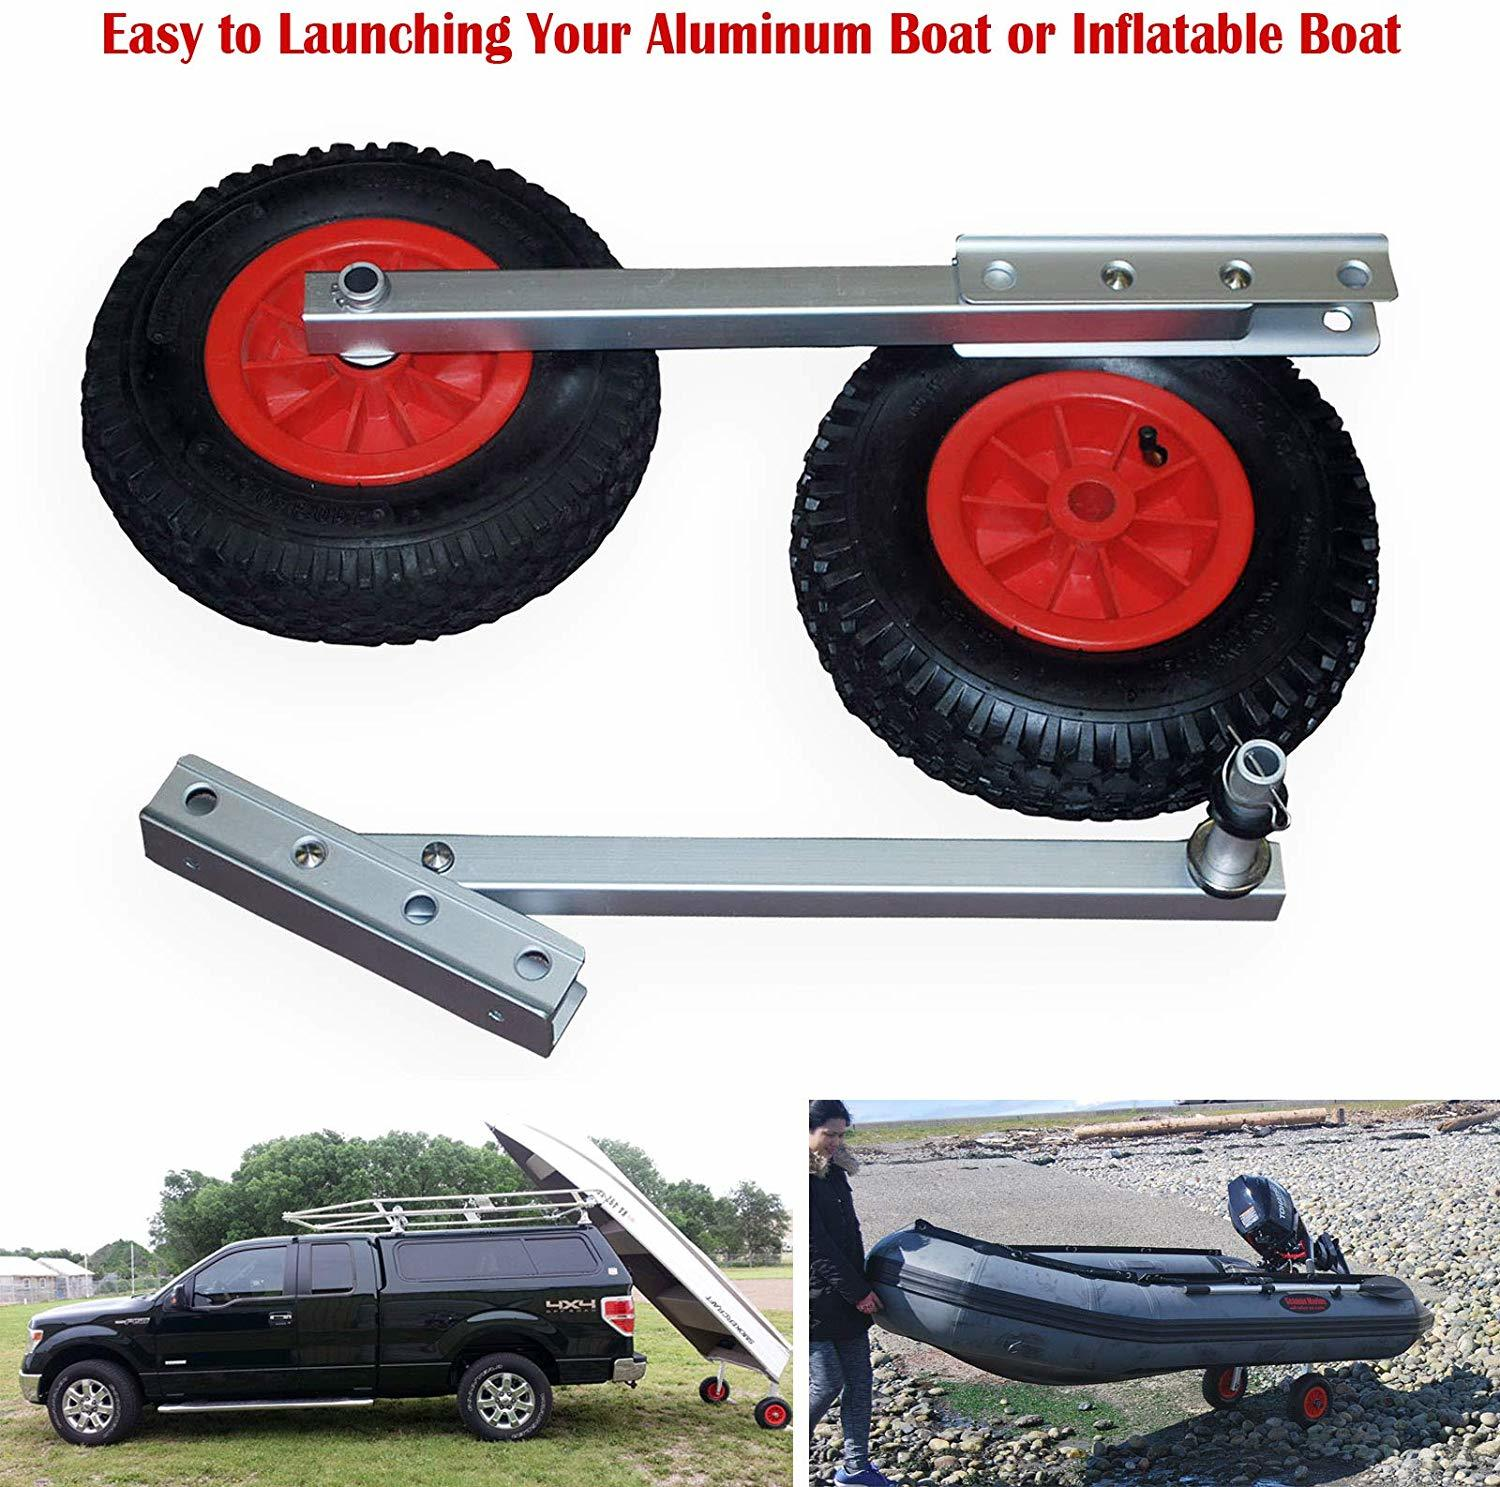 8 Best Dinghy Wheels You Can Choose to Move Your Dinghy Easily 7